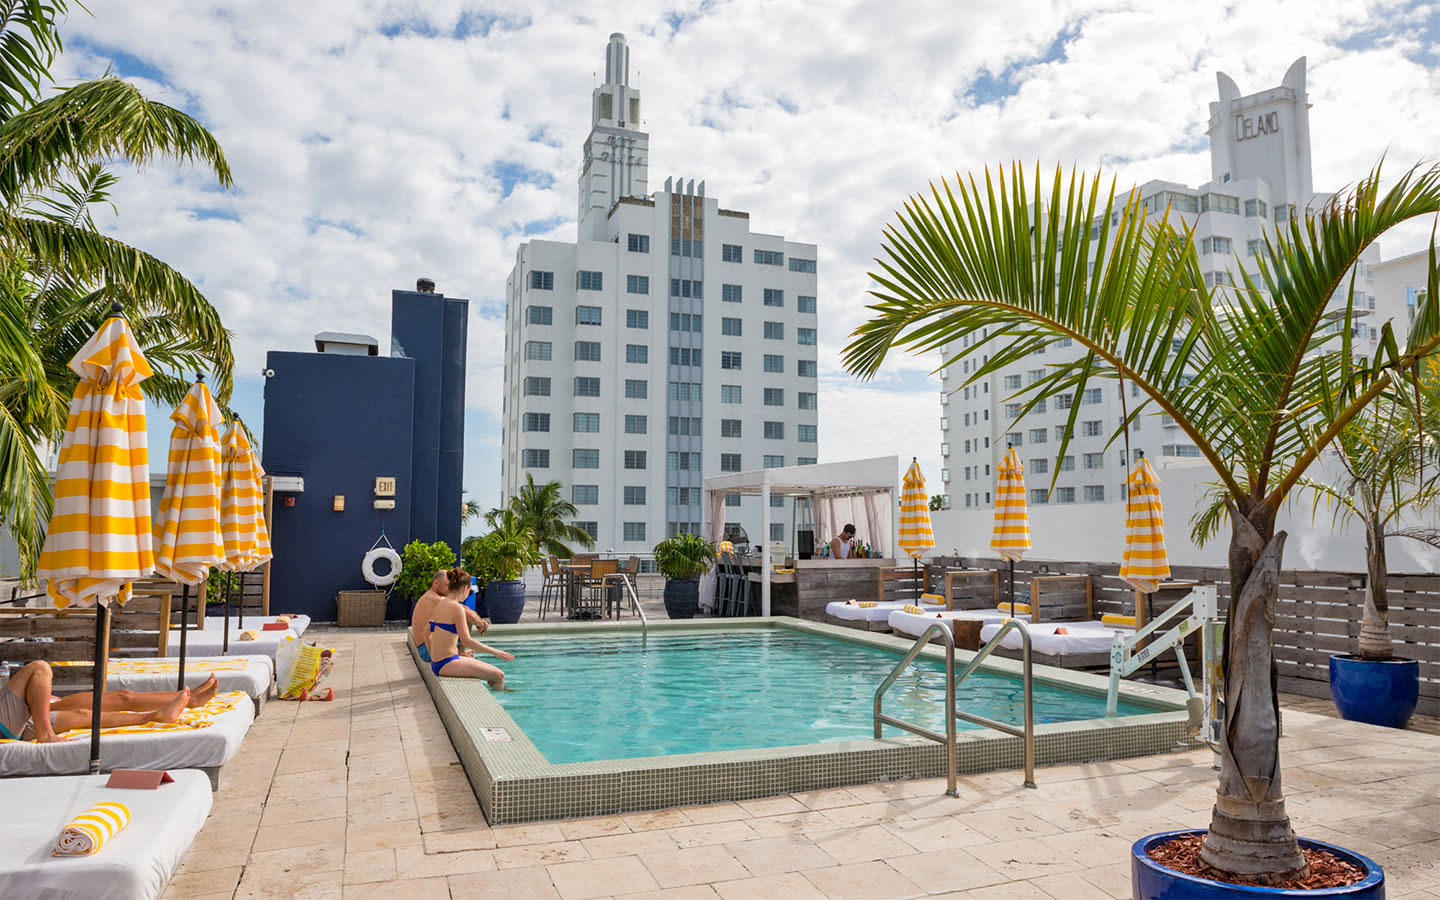 Rooftop Pool at the Catalina Hotel